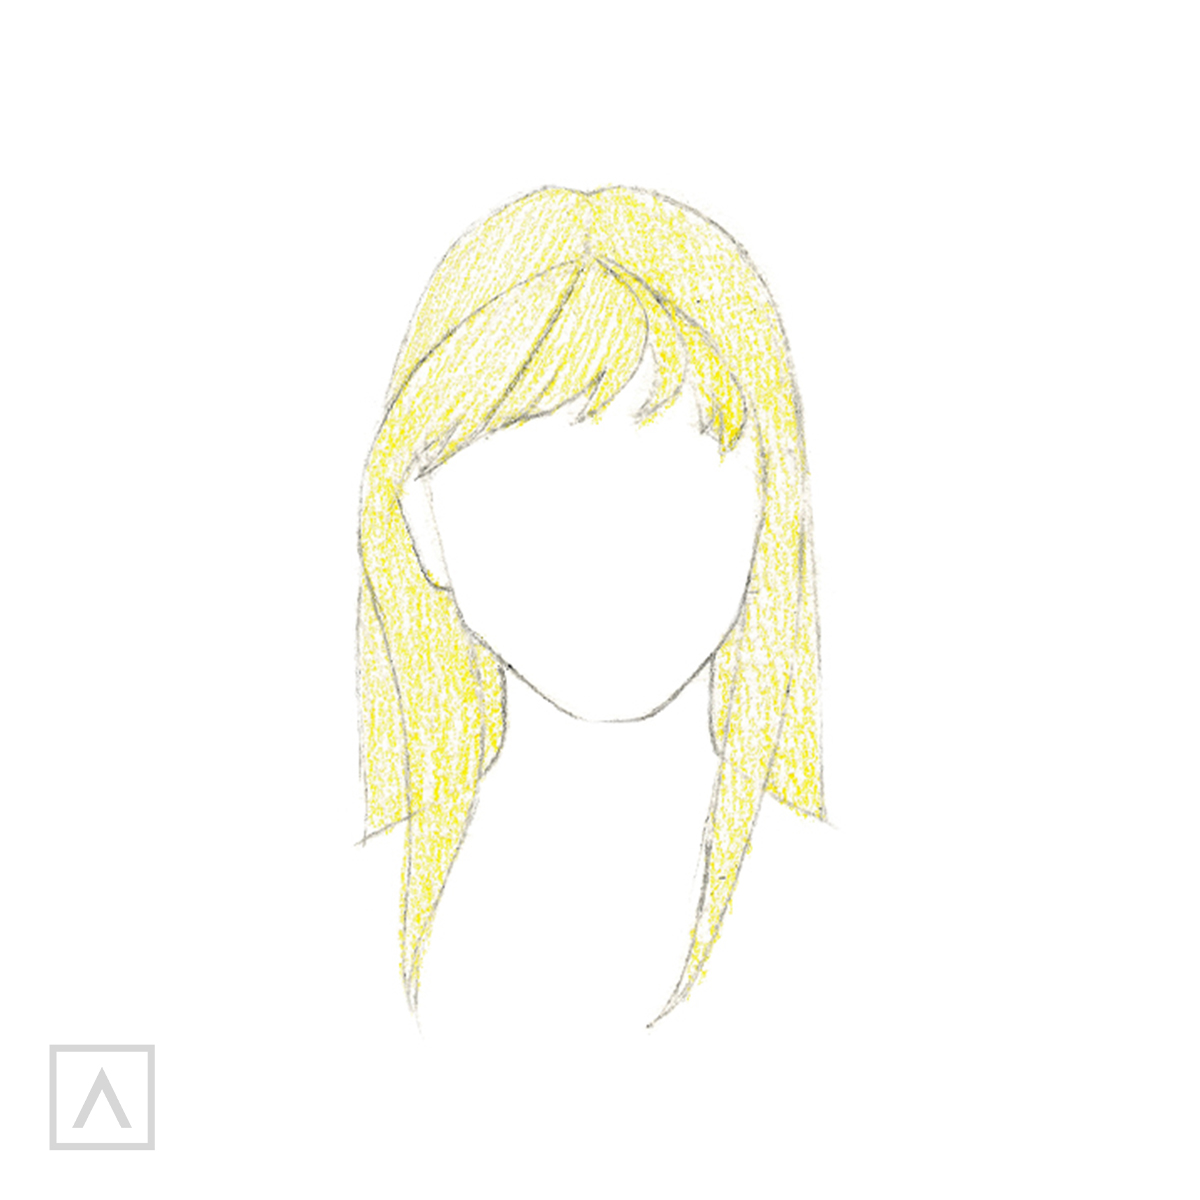 How to Draw Hair with Bangs - Step 6